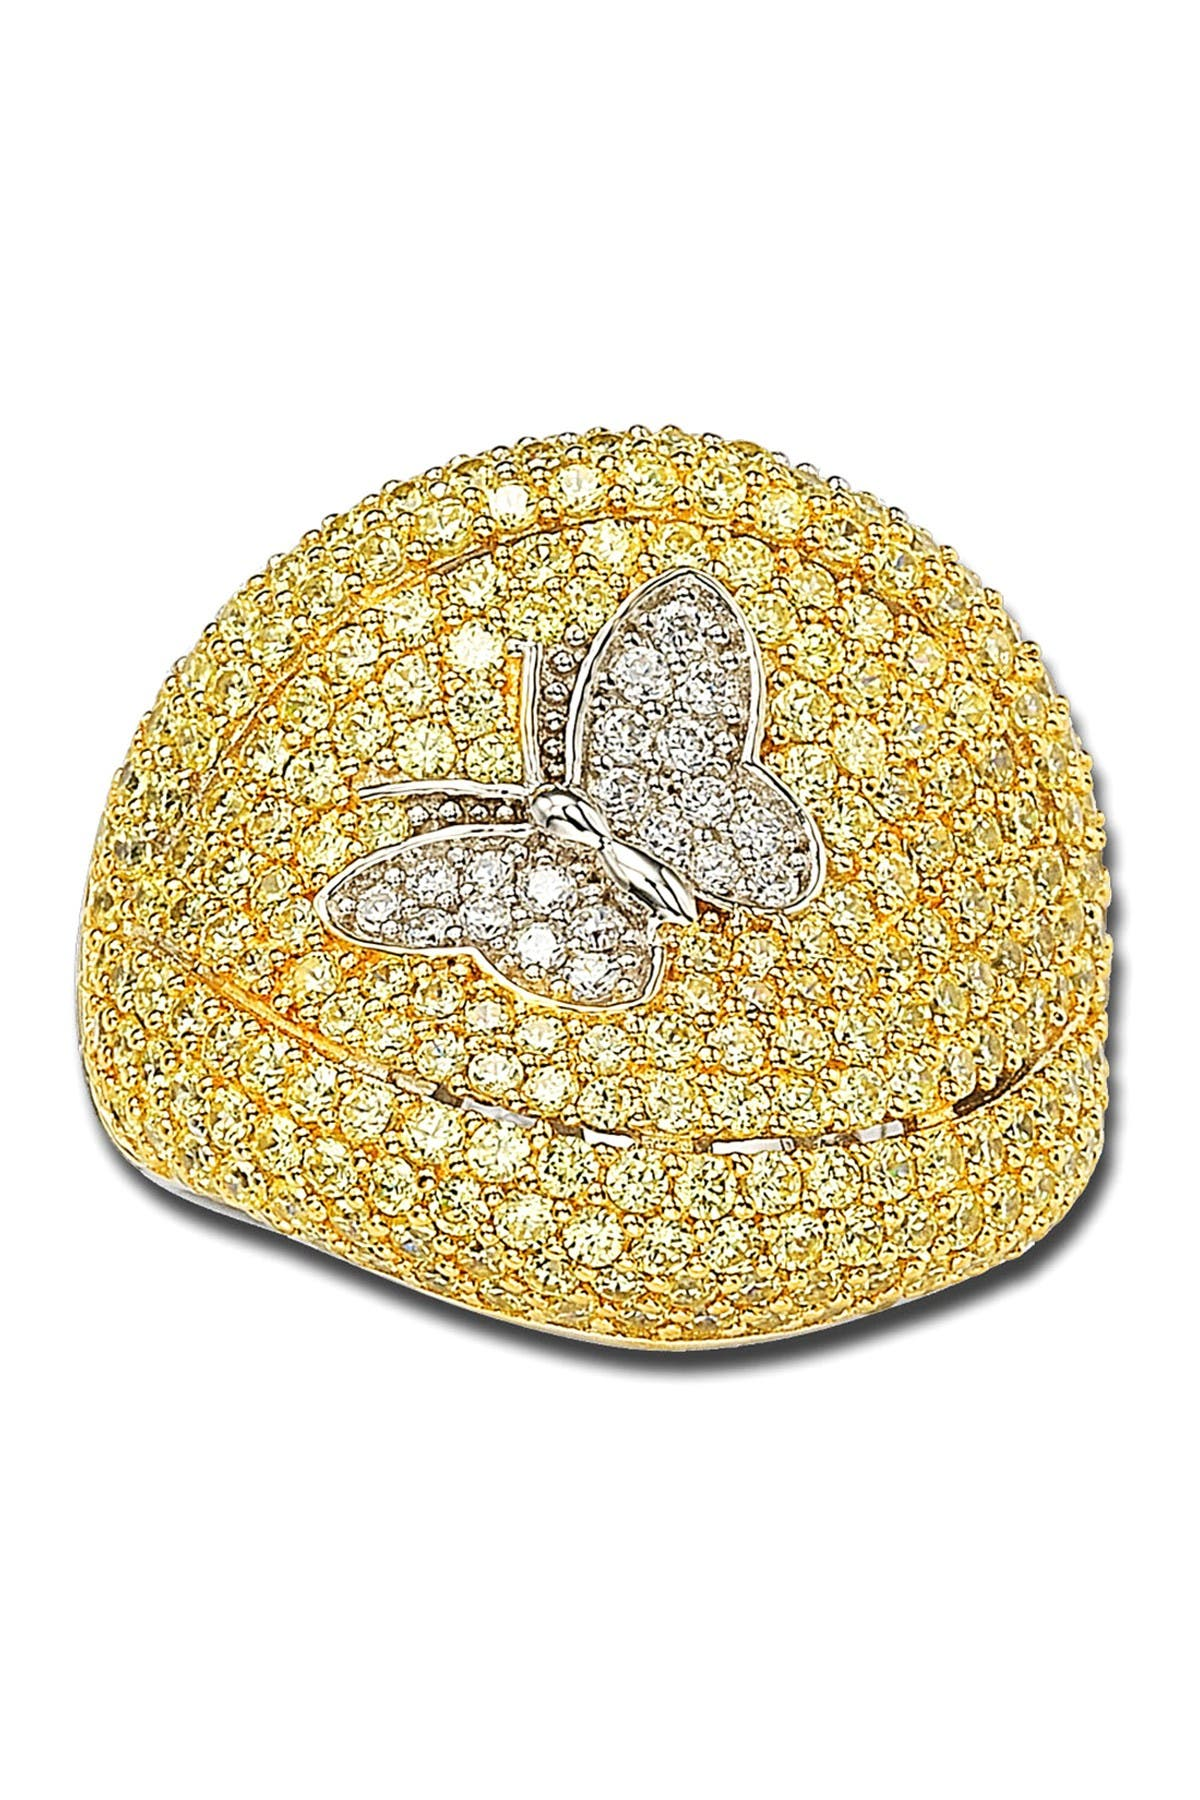 Image of Suzy Levian Sterling Silver Yellow & White CZ Pave Ring